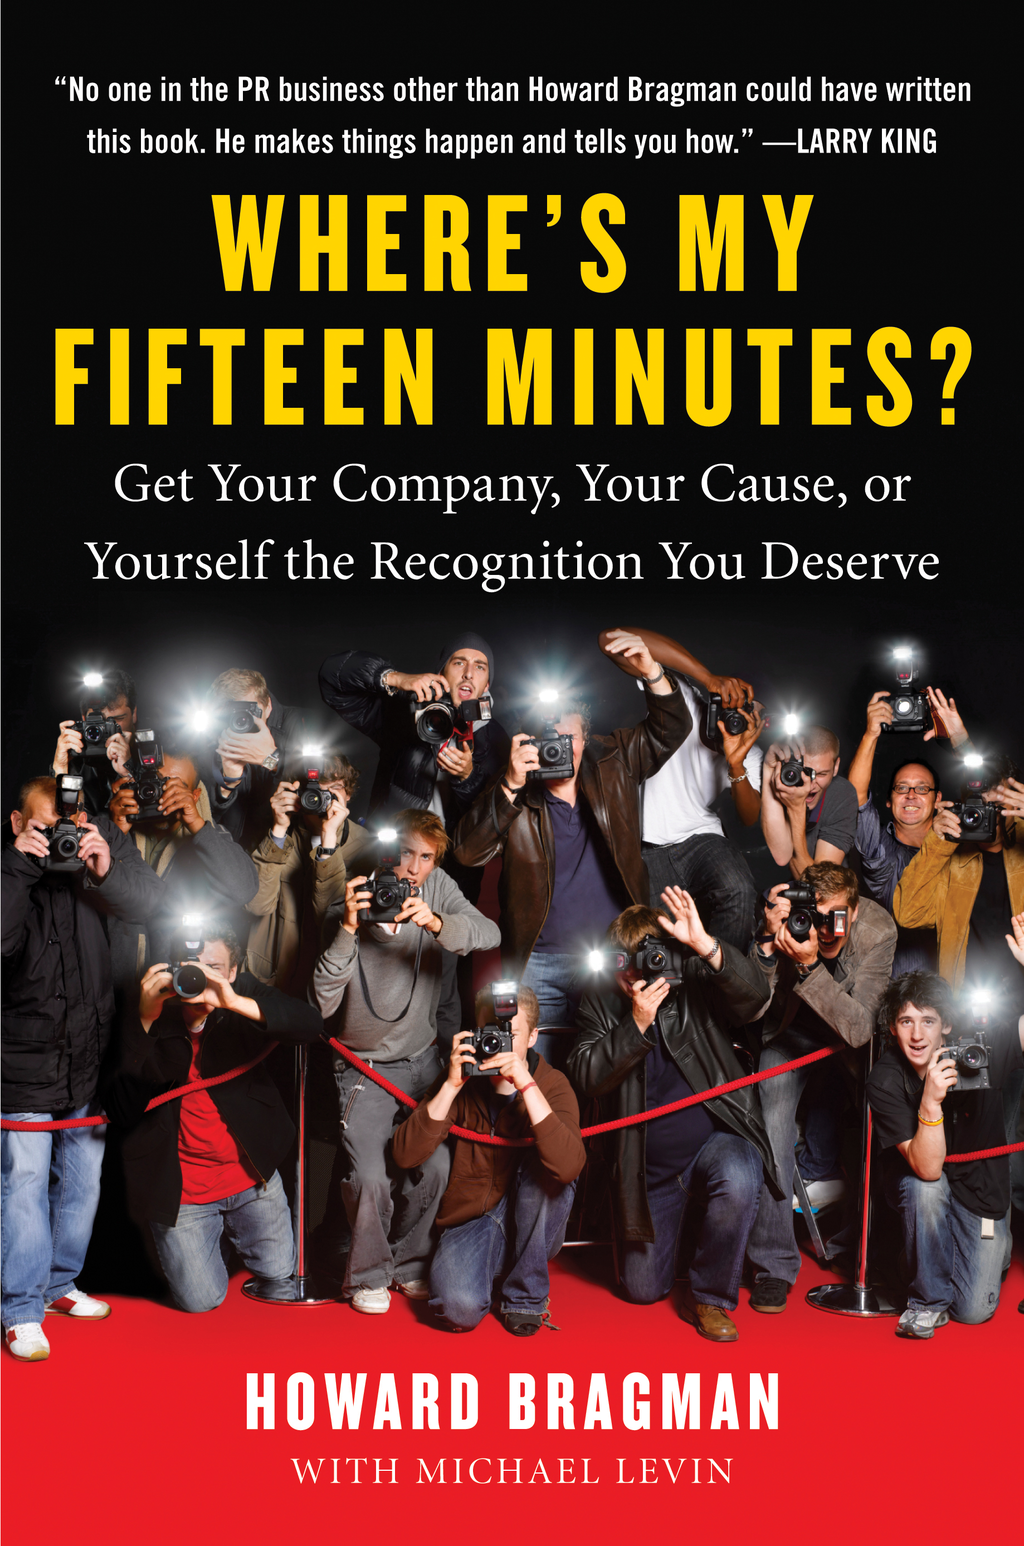 Where's My Fifteen Minutes? Get Your Company,  Your Cause,  or Yourself the Recognition You Deserve